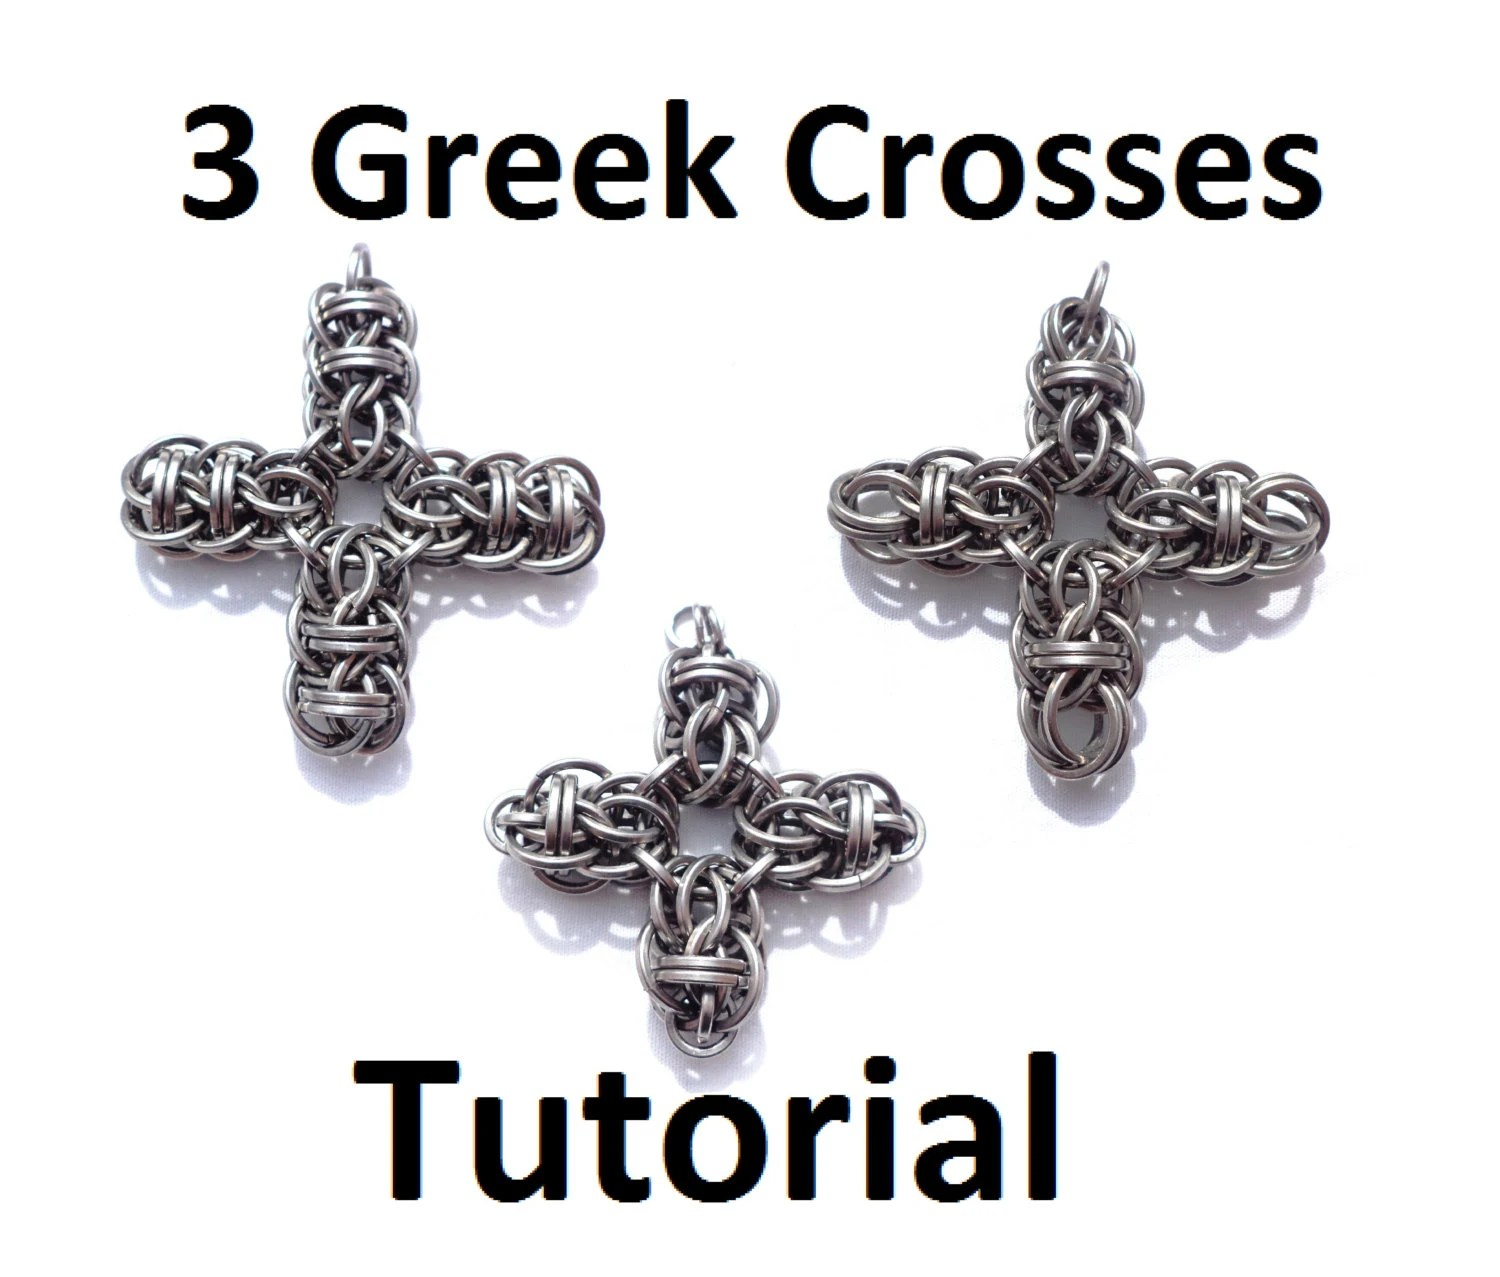 Tutorial for Celtic Cross Chain Maille Pendant in both square